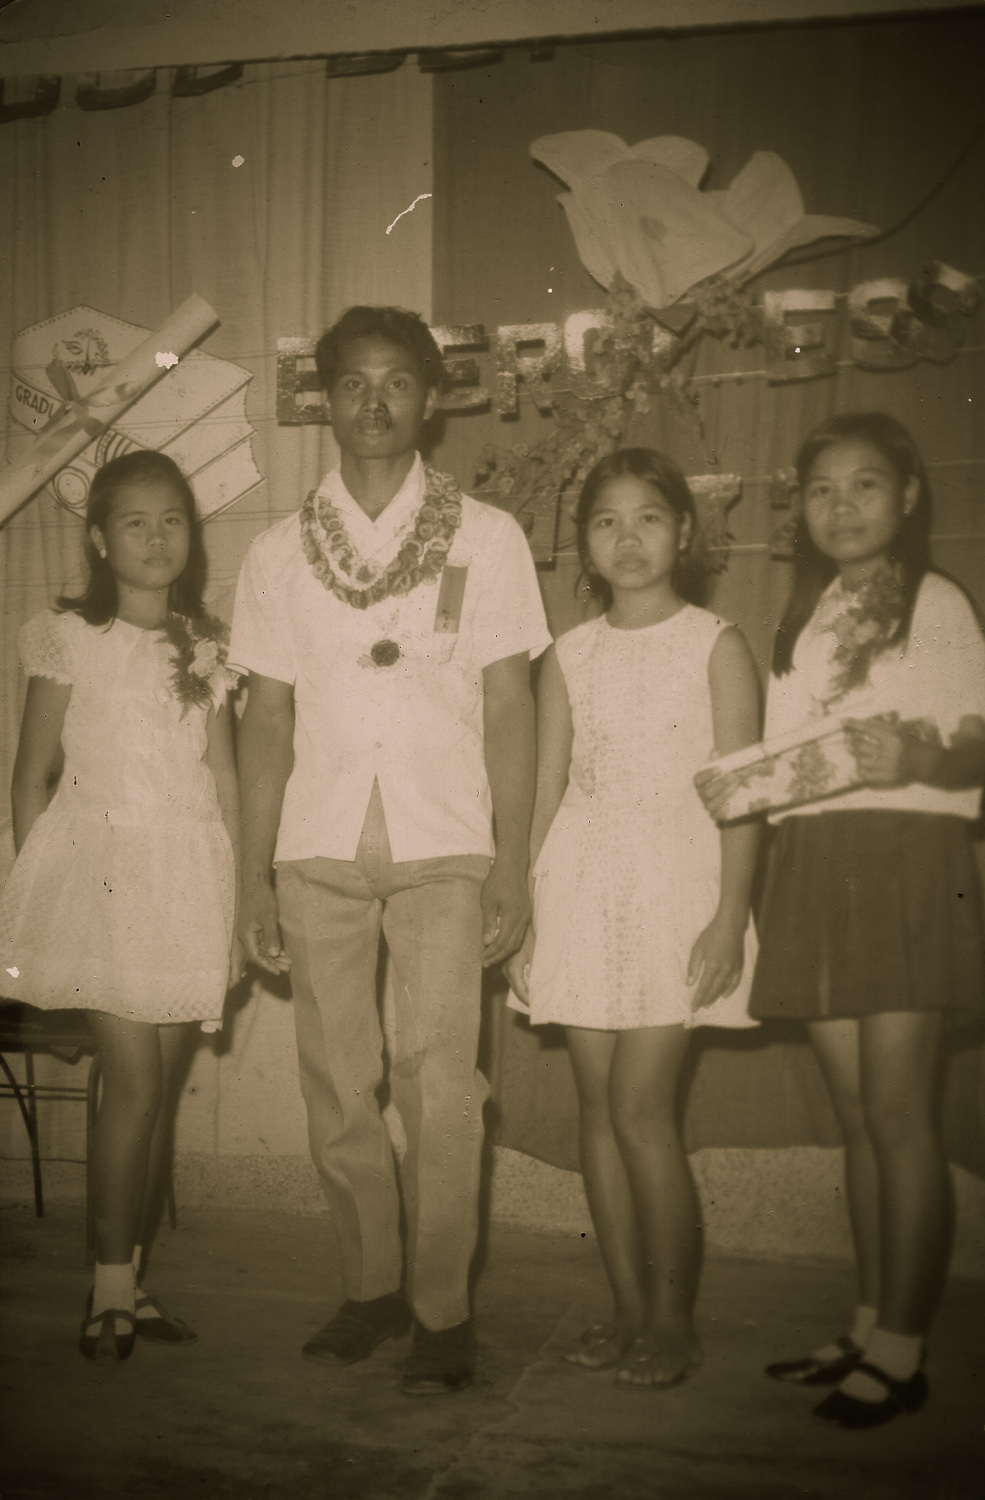 My three sisters Ate Grace (Left), Ate Del (Centre) and Ate May (Right). There were in their early teens. I don't know who the dude was though, I don't care about him.